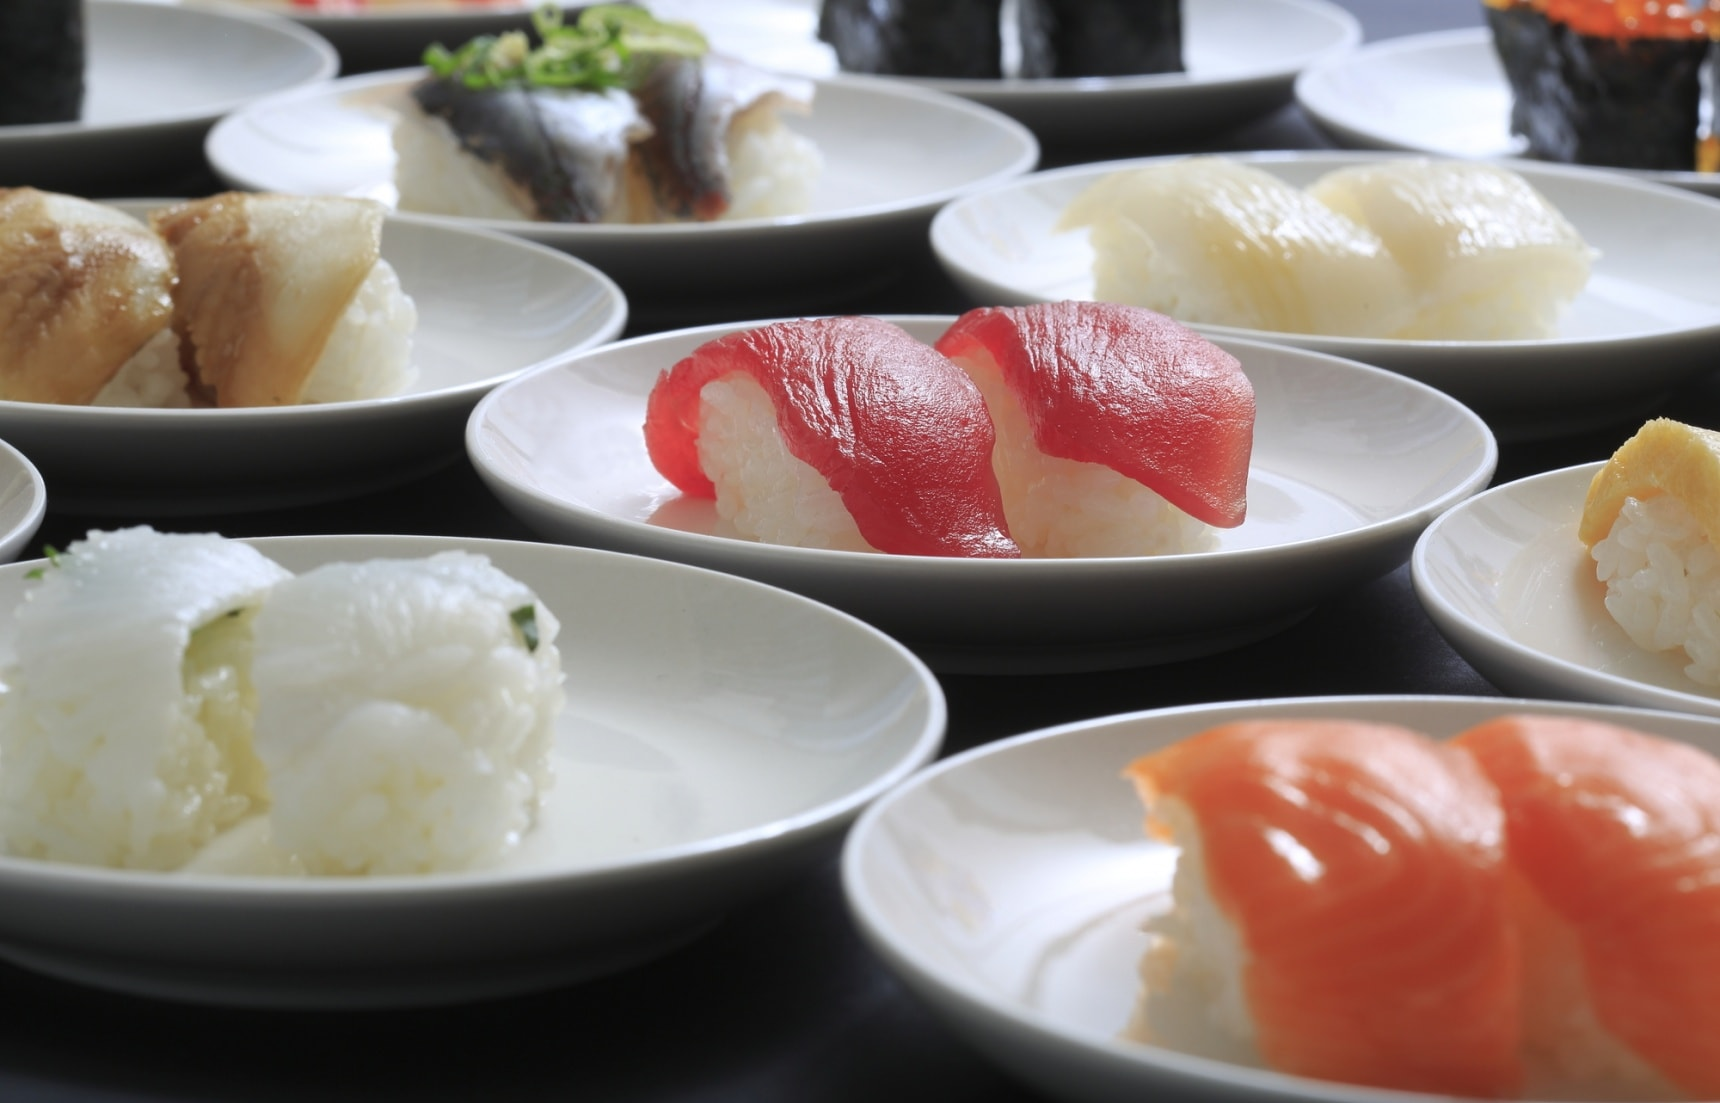 Trade Youtube Videos For All You Can Eat Sushi All About Japan